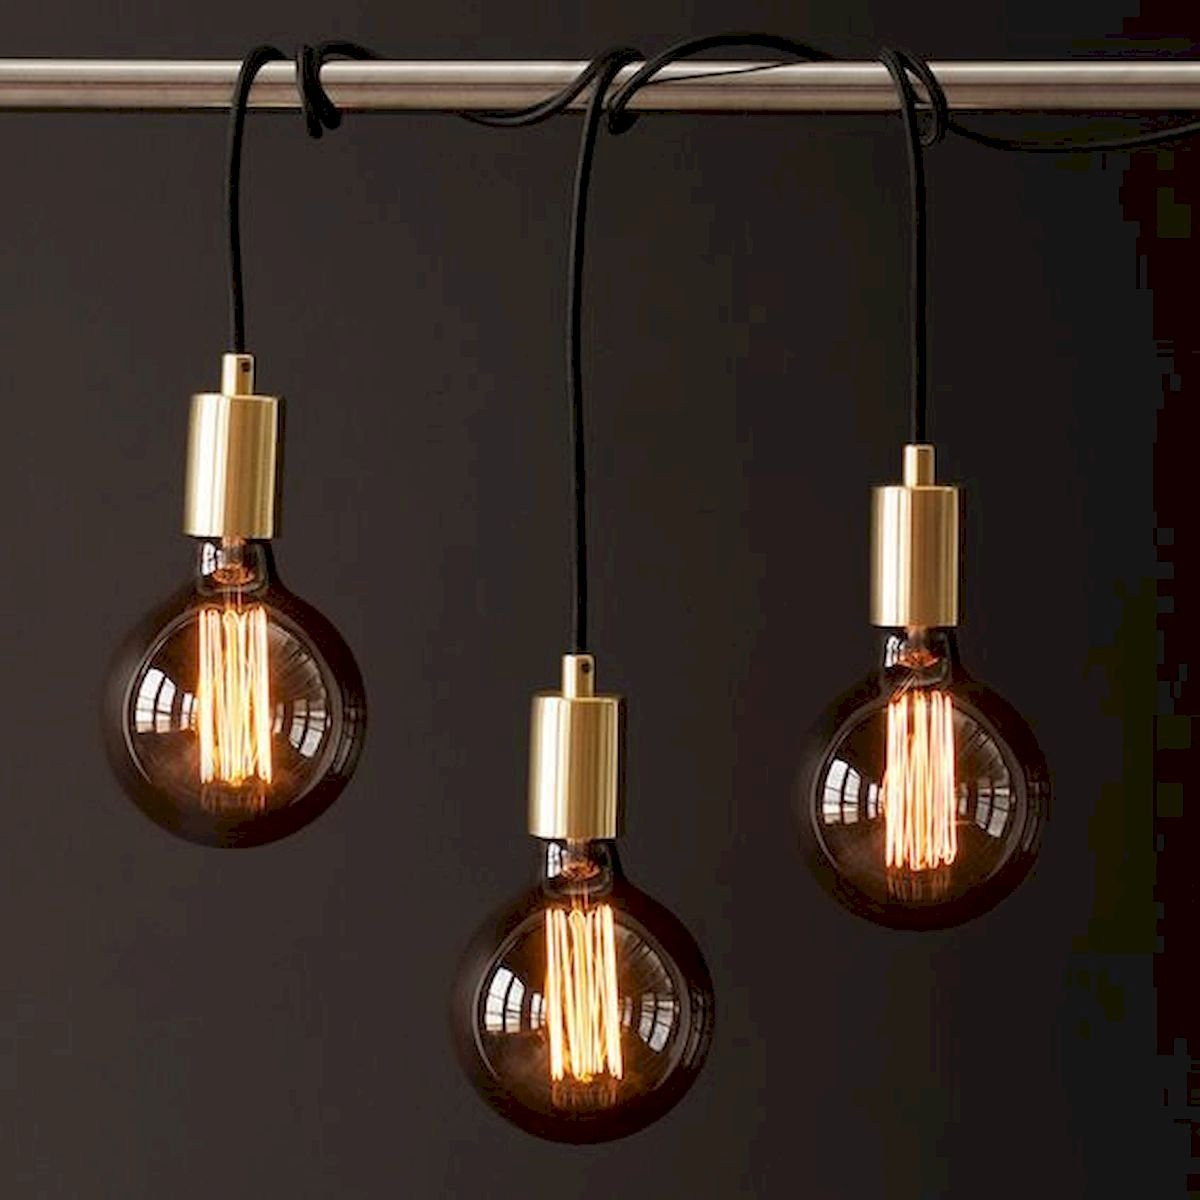 40 Fantastic DIY Lamps Decoration Ideas for Your Home (8)